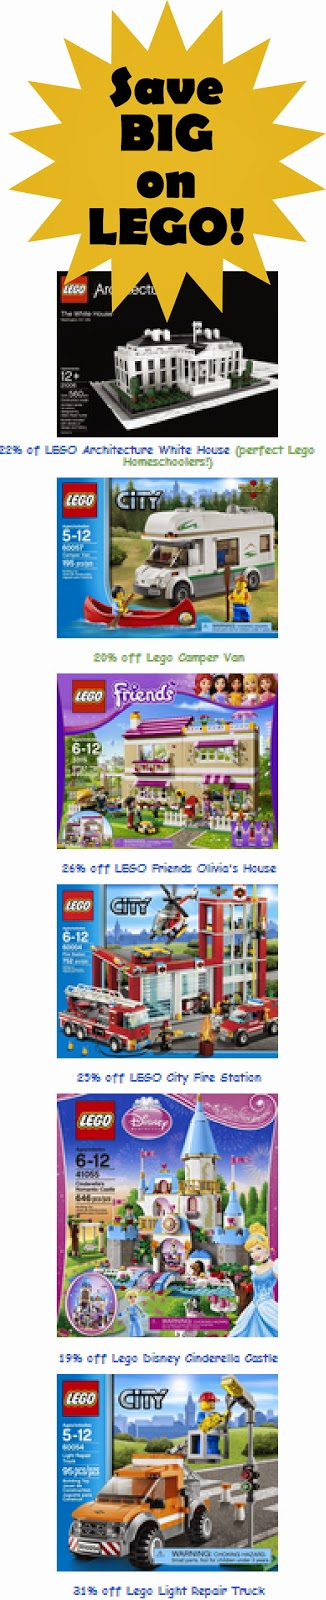 discounted lego sets in Amazon's big Christmas in July Lego sale event. Love the Lego White House, Lego Disney Princess Castle, Lego Fire station and more!